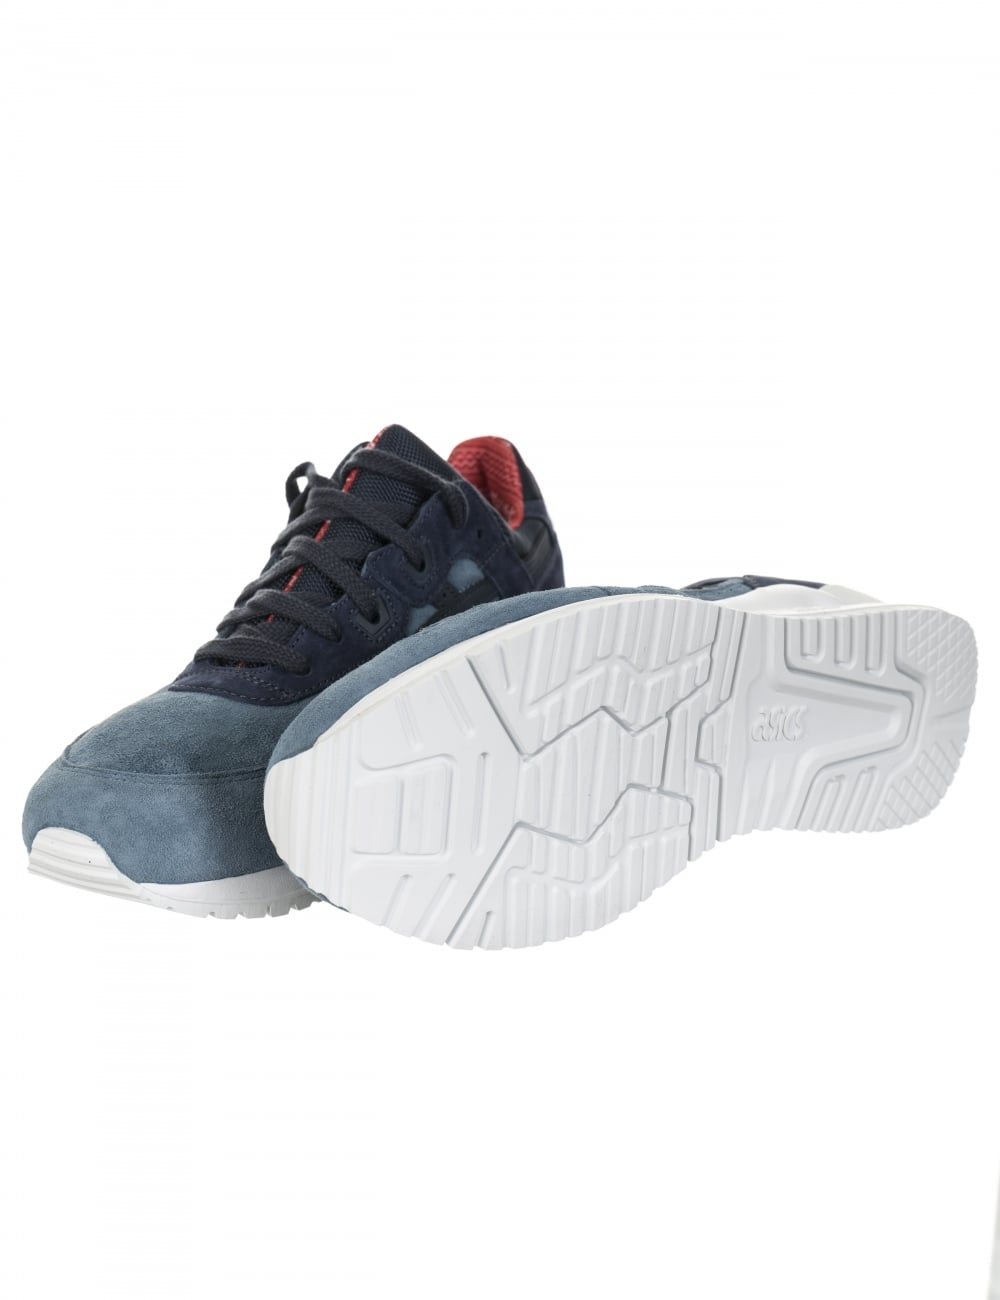 timeless design 8f1ee 006b7 Gel Lyte III Shoes - Blue Mirage/India (Christmas Pack)